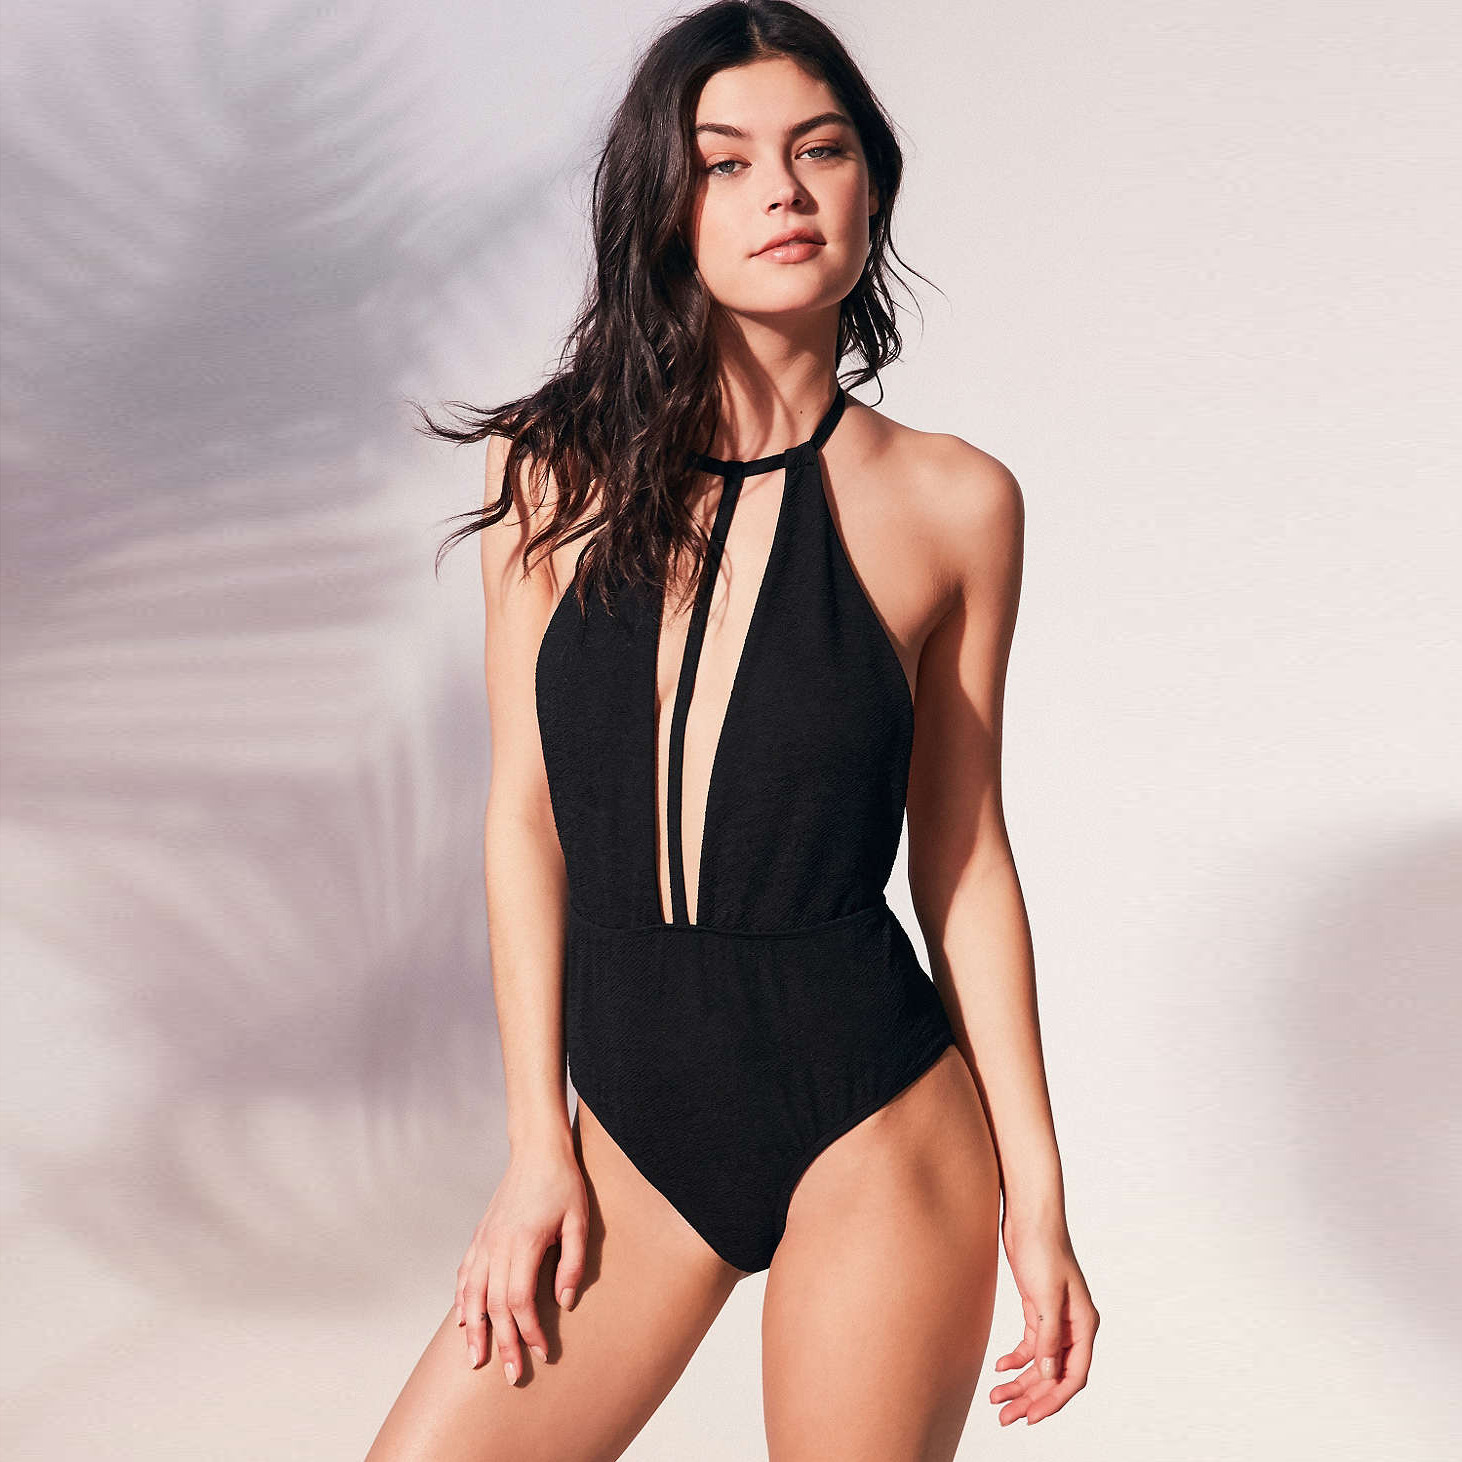 sexy style high neck solid color one piece see through swimsuit for women High Neck V Style 2017 Solid One-Piece Swimsuit Solid Color Swimwear Bathing Suit Bikini For Female Beachwear